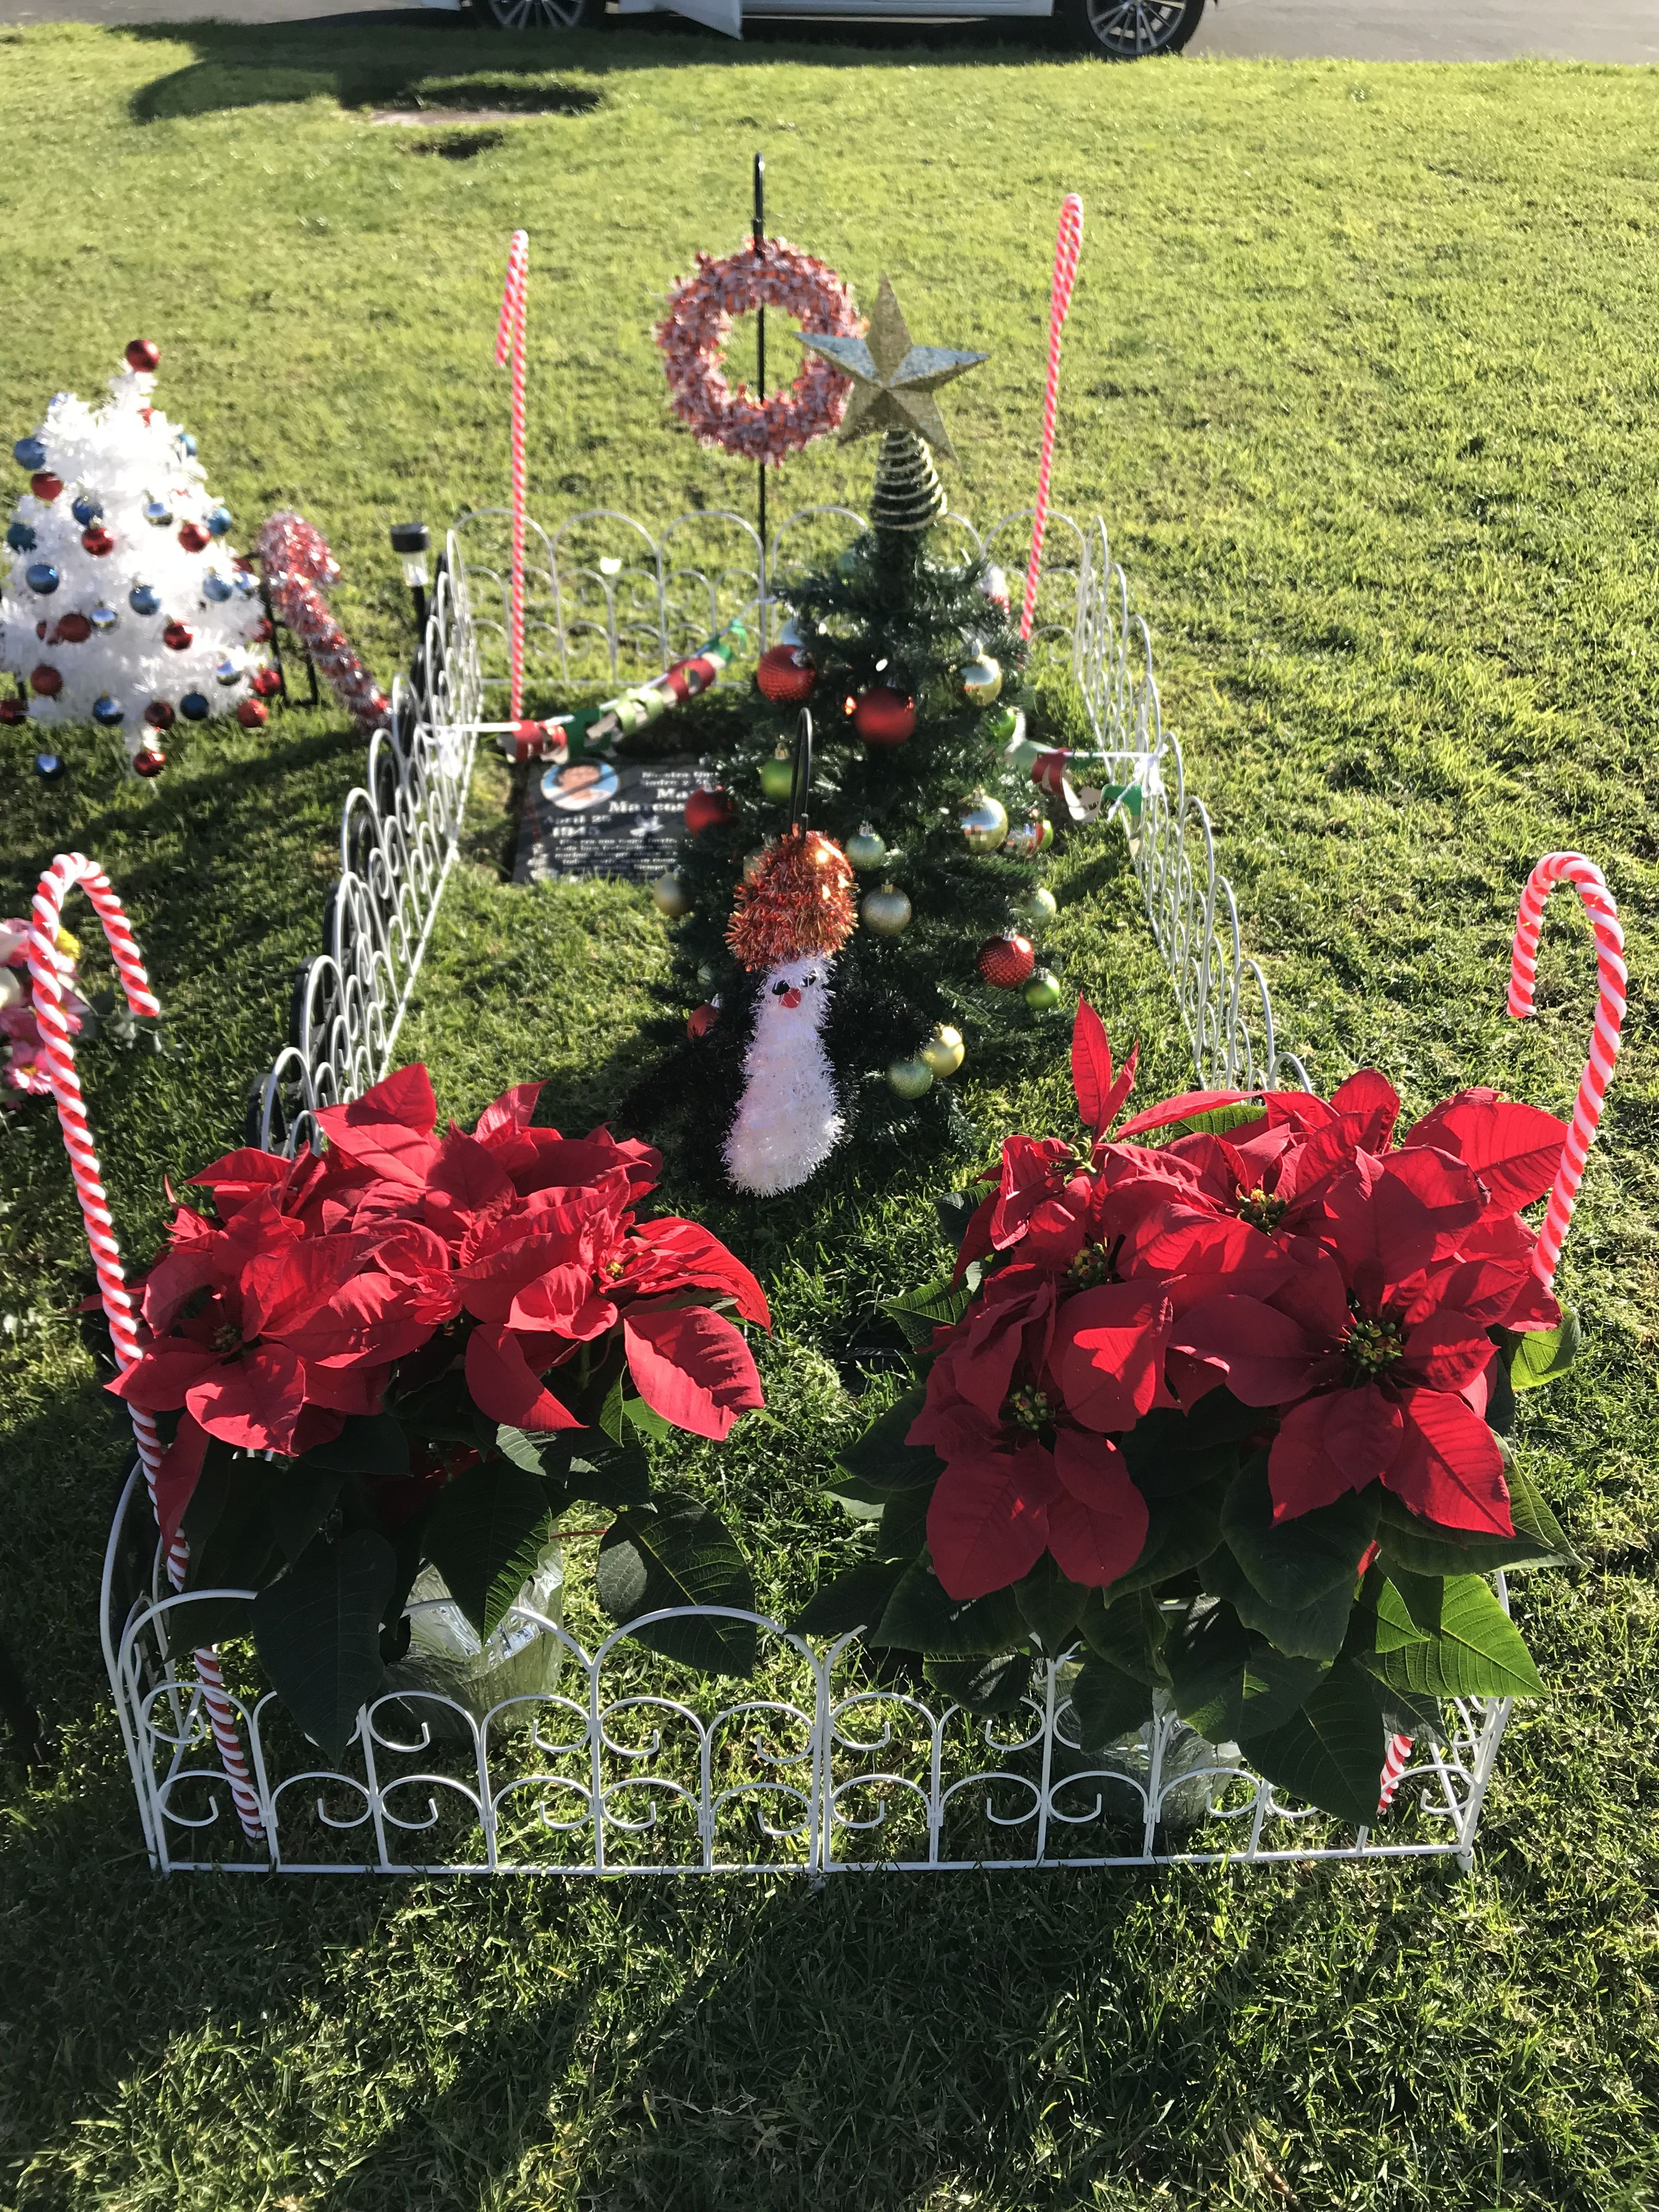 Christmas decorations 2017 | Mom's Decorations at the Cemetery ...